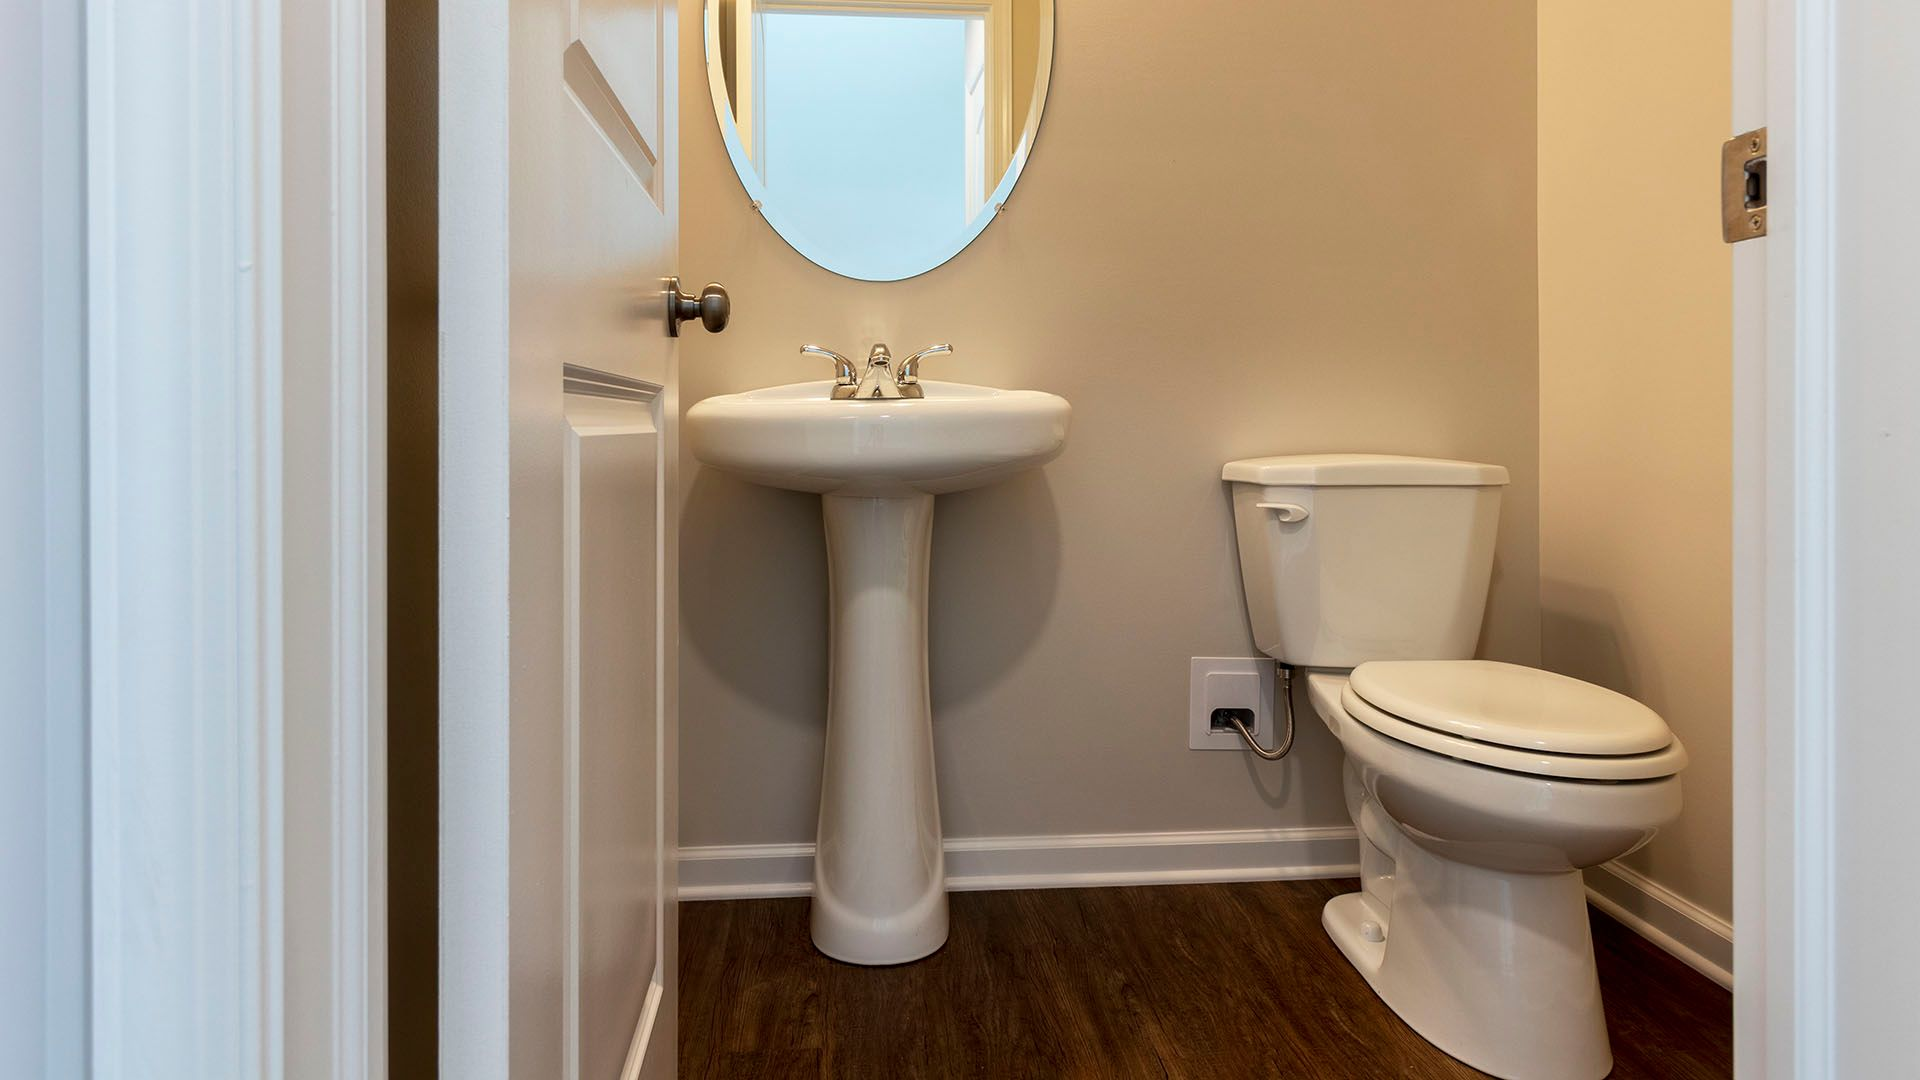 Bathroom featured in the Cedarwood By S & A Homes in Altoona, PA